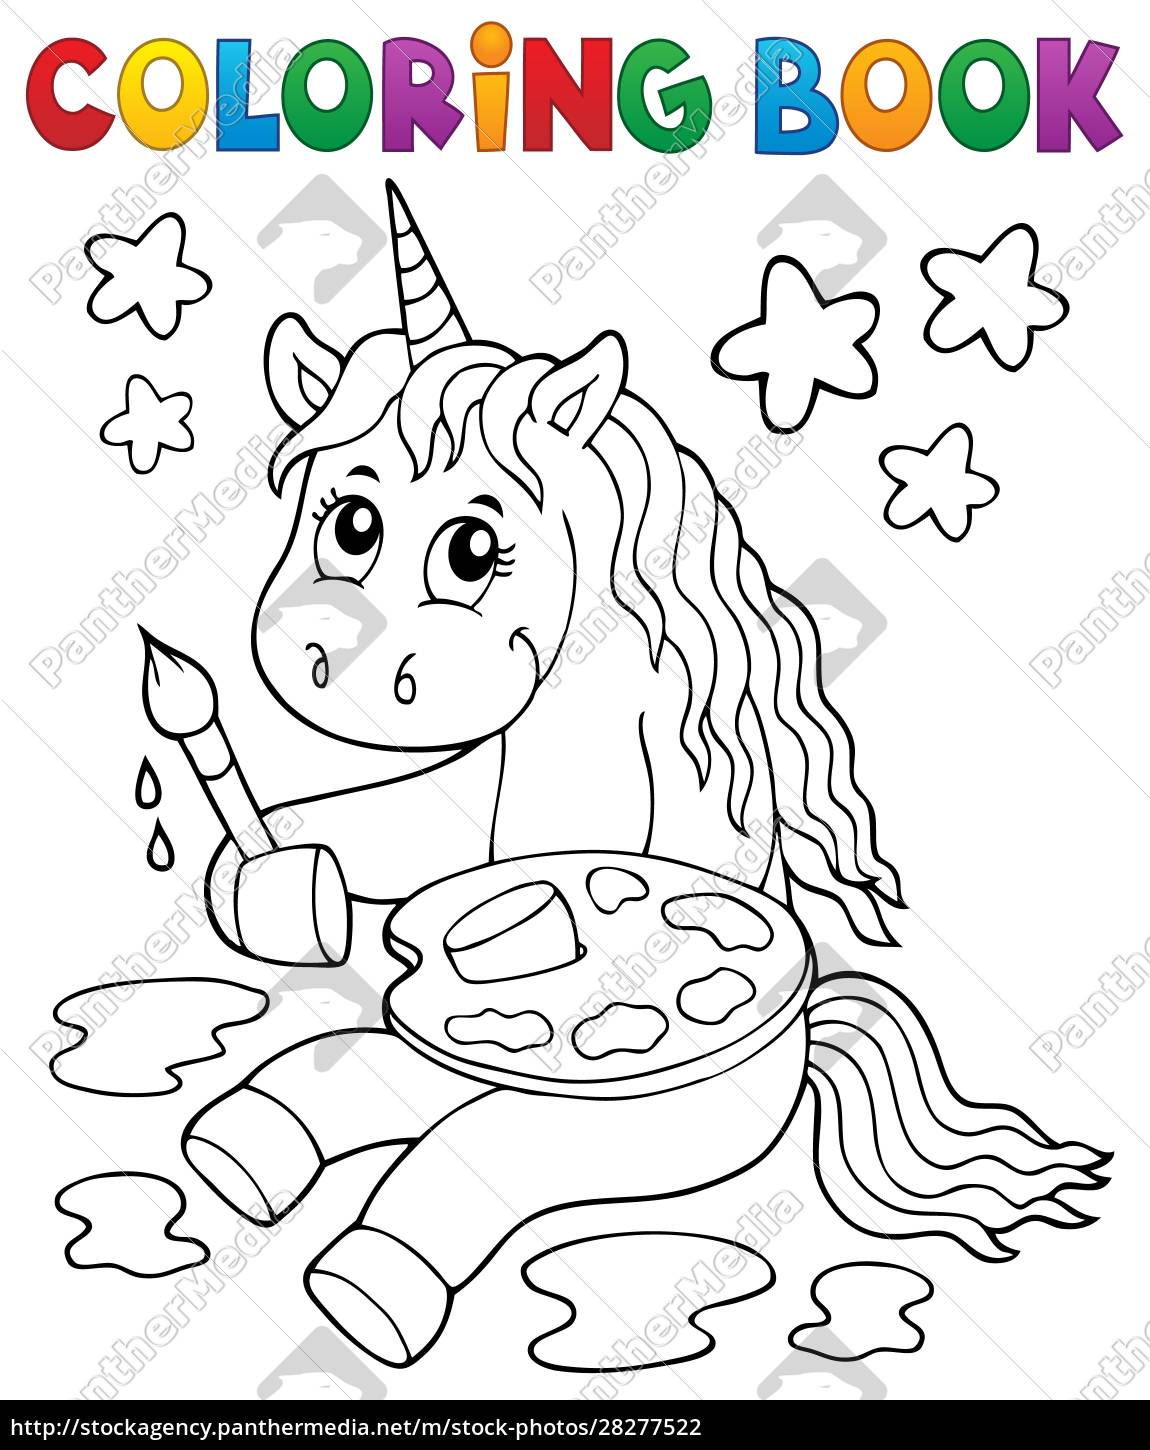 coloring, book, painting, unicorn, theme, 1 - 28277522